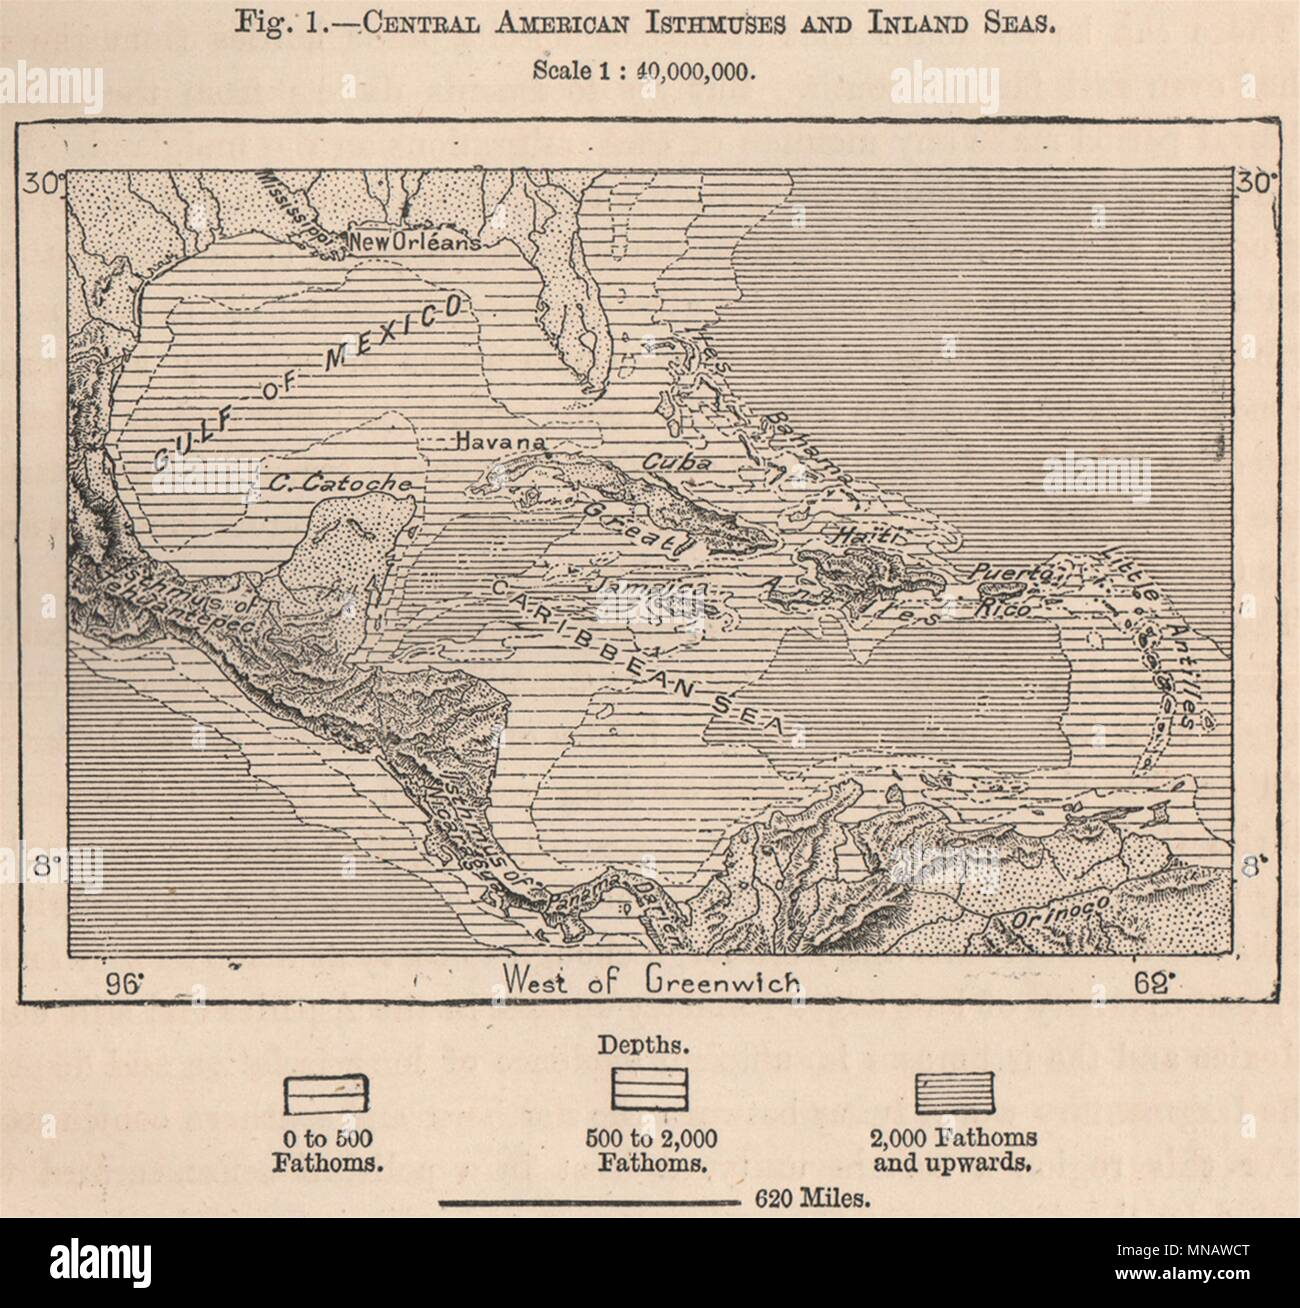 Central American Isthmuses and Inland Seas. Caribbean 1885 old ...